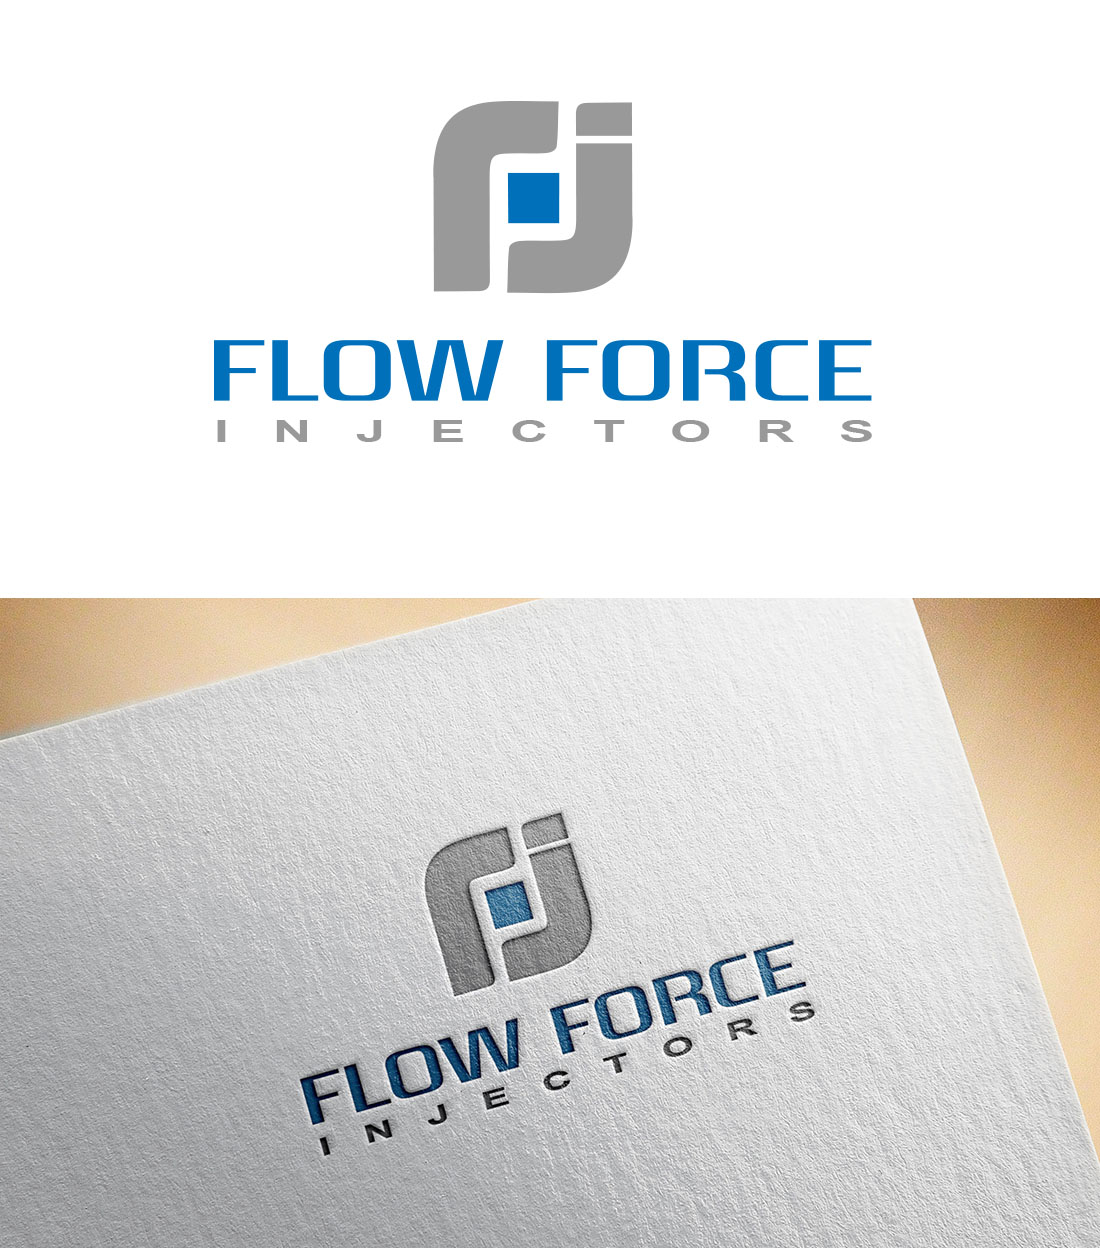 Logo Design by Wilfred Ponseca - Entry No. 18 in the Logo Design Contest Fun Logo Design for Flow Force Injectors.